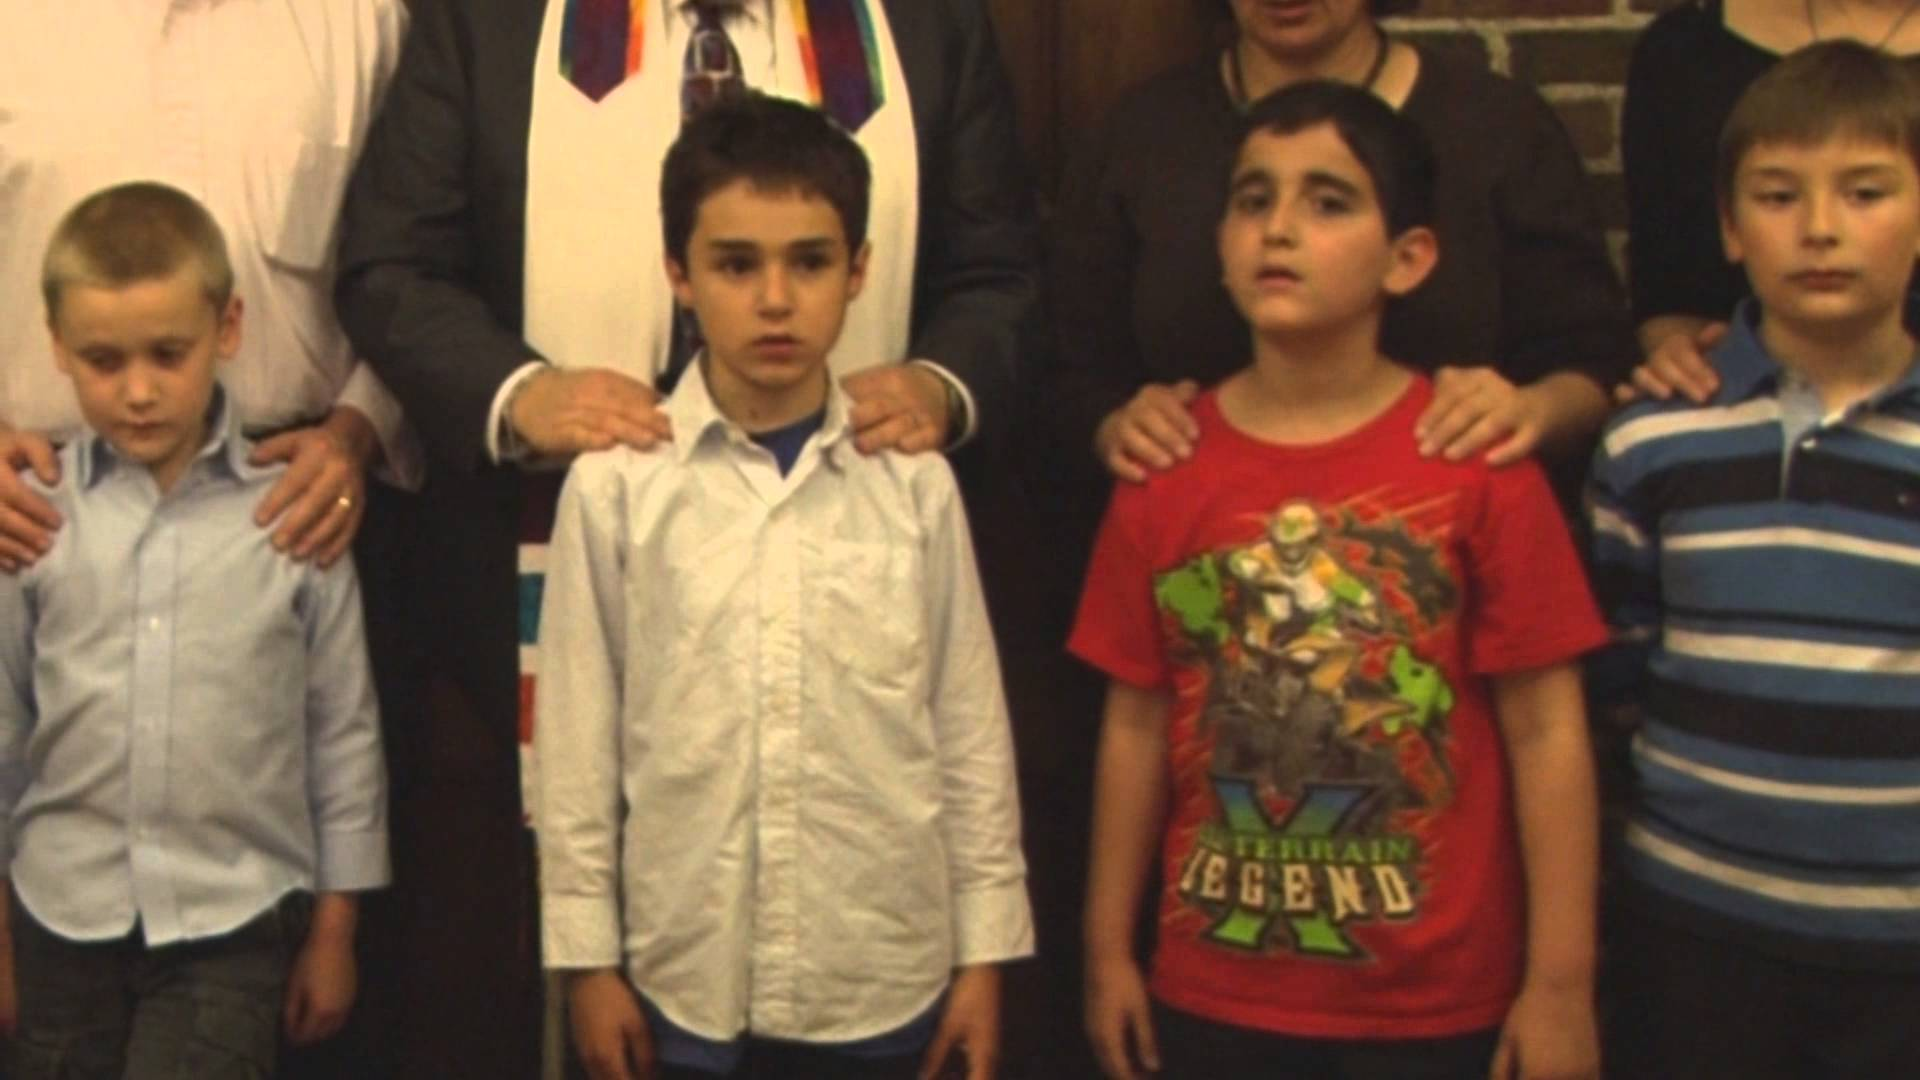 Rabbi Teaches Congregants the Blessing Over the Children